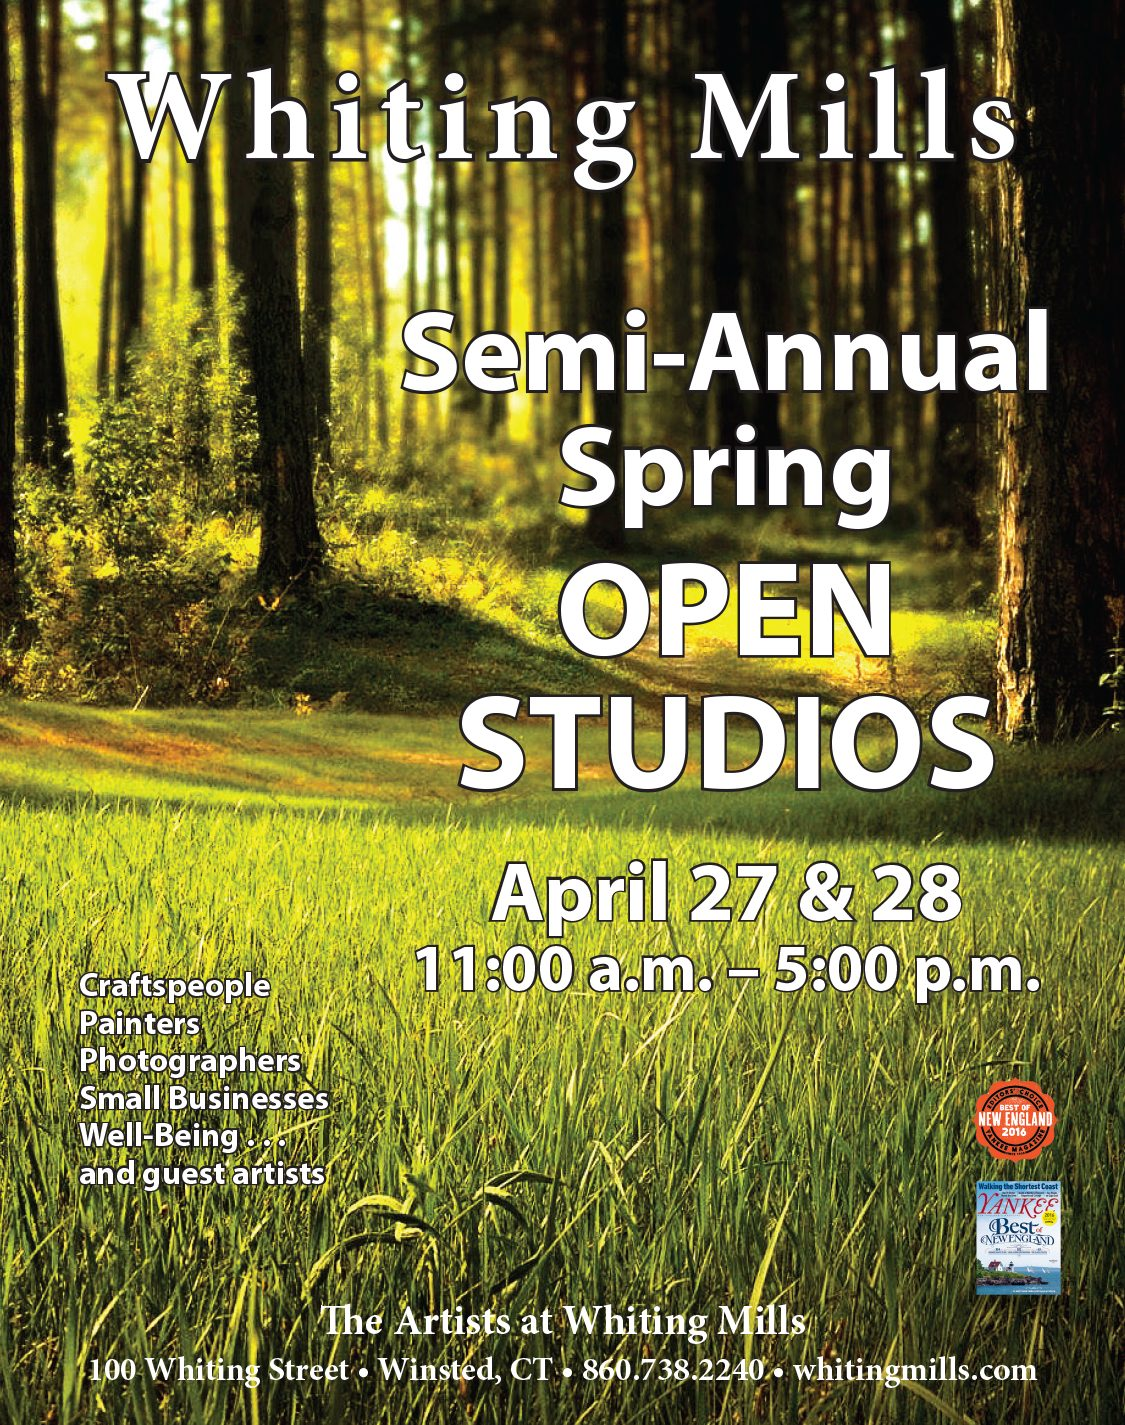 Semi-Annual Open Studios